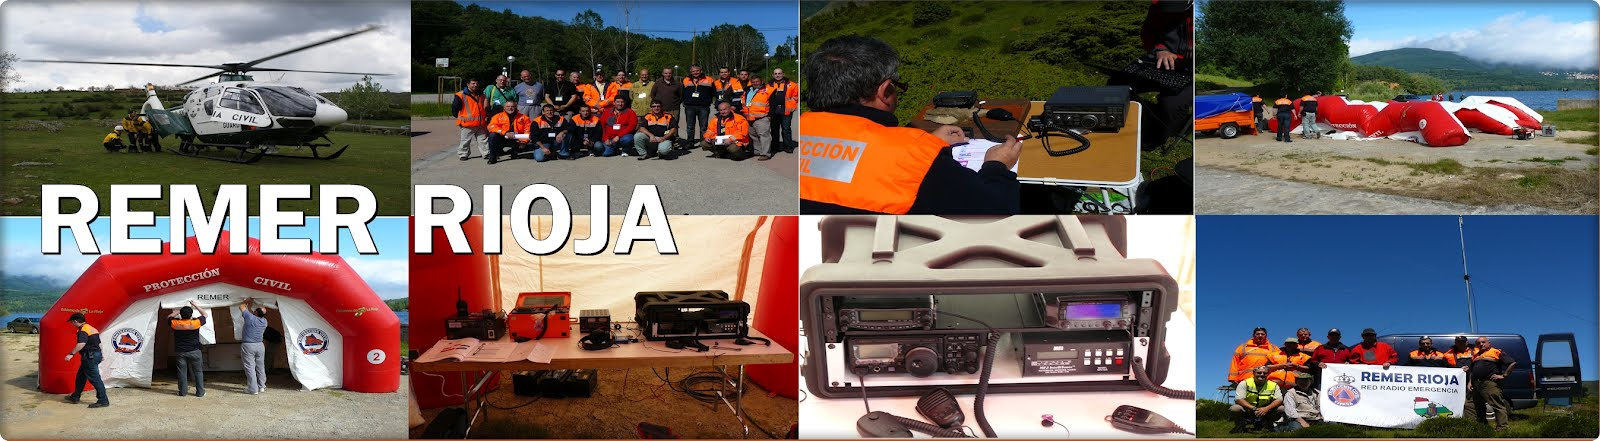 RED RADIO DE EMERGENCIA RIOJA